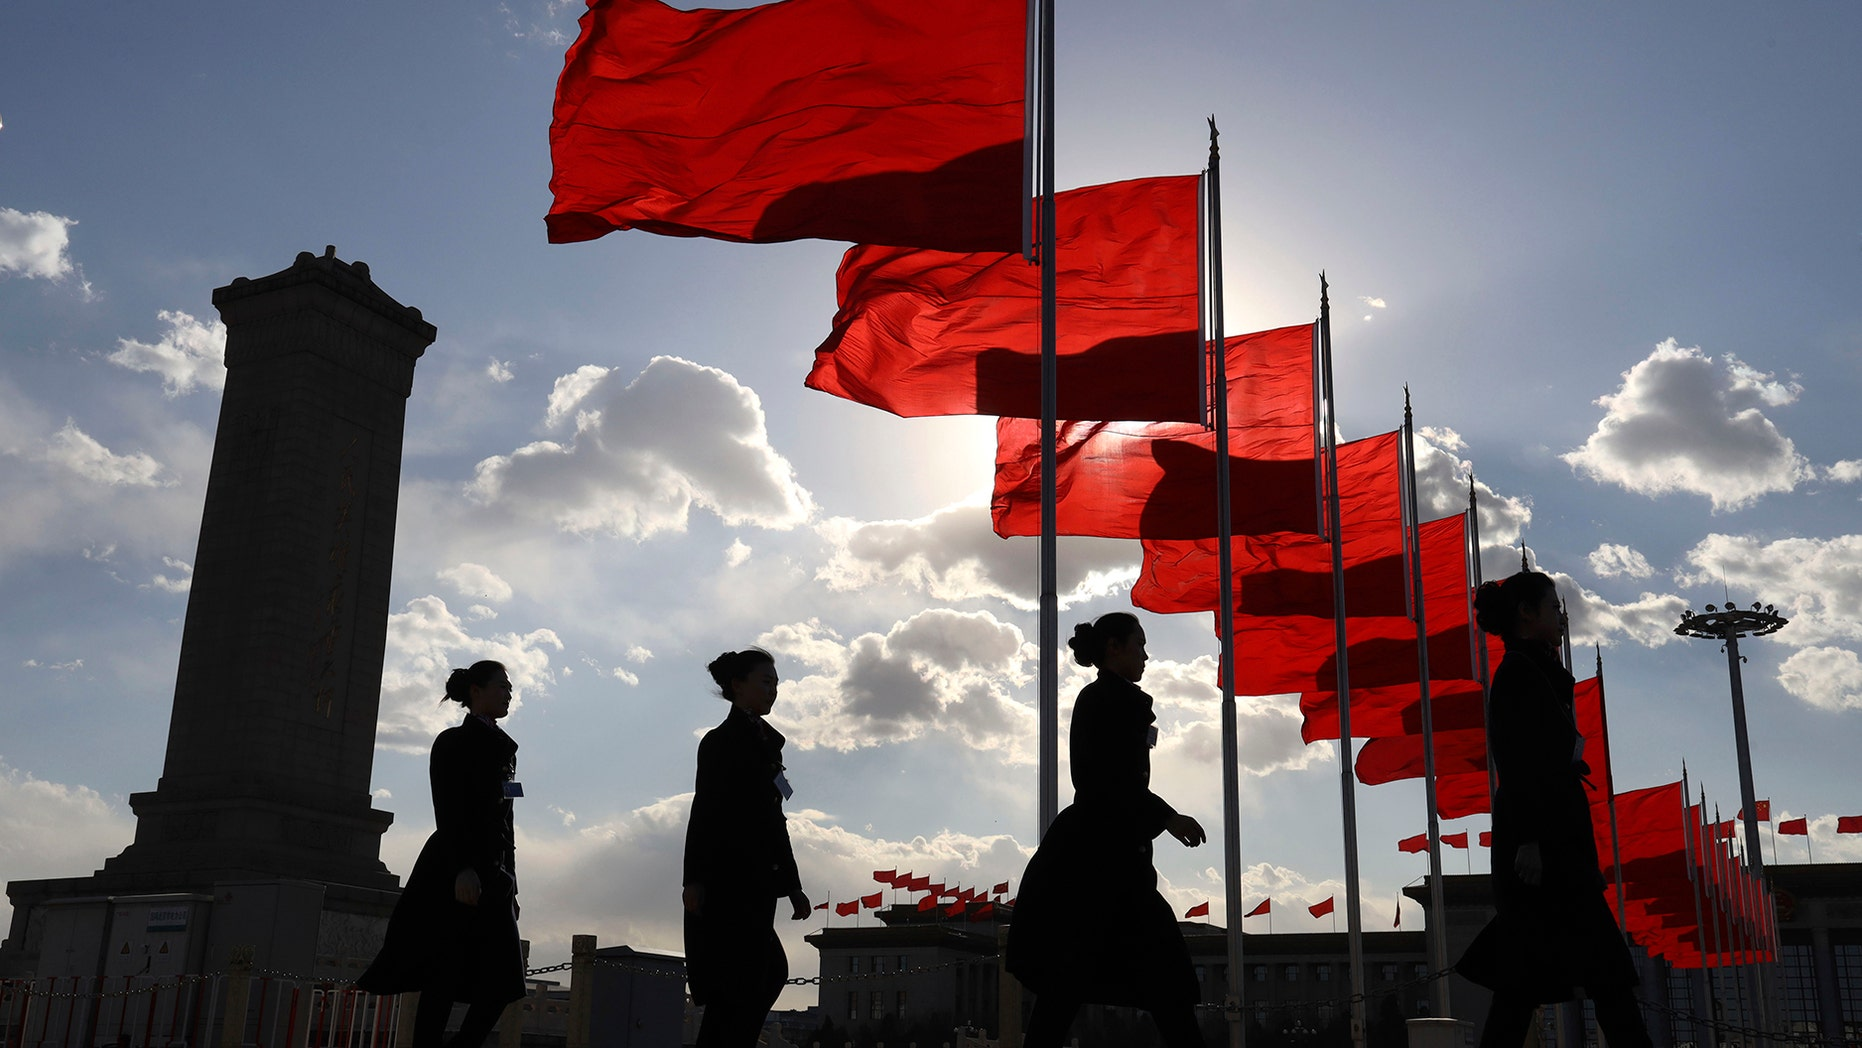 Bus ushers walk past red flags on Tiananmen Square during a plenary session of the Chinese People's Political Consultative Conference (CPPCC) at the Great Hall of the People in Beijing Monday, March 11, 2019 - file photo.